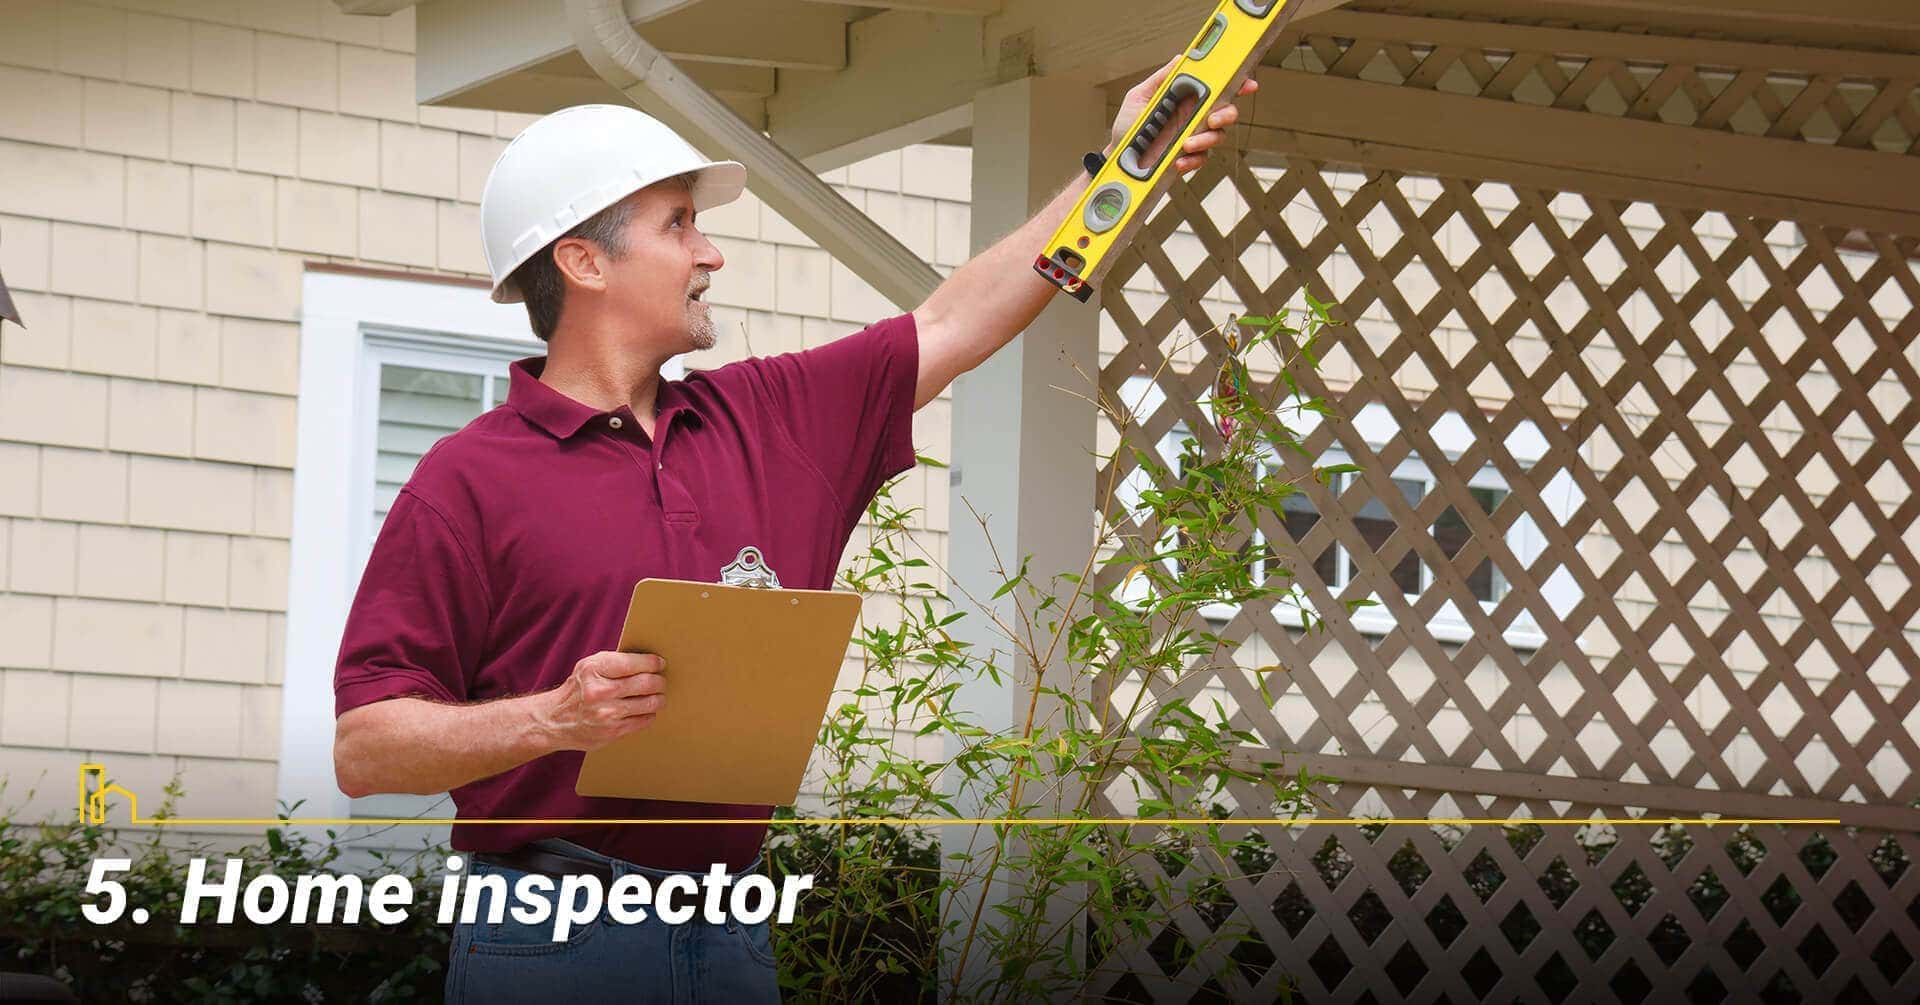 Home inspector, hire a home inspector